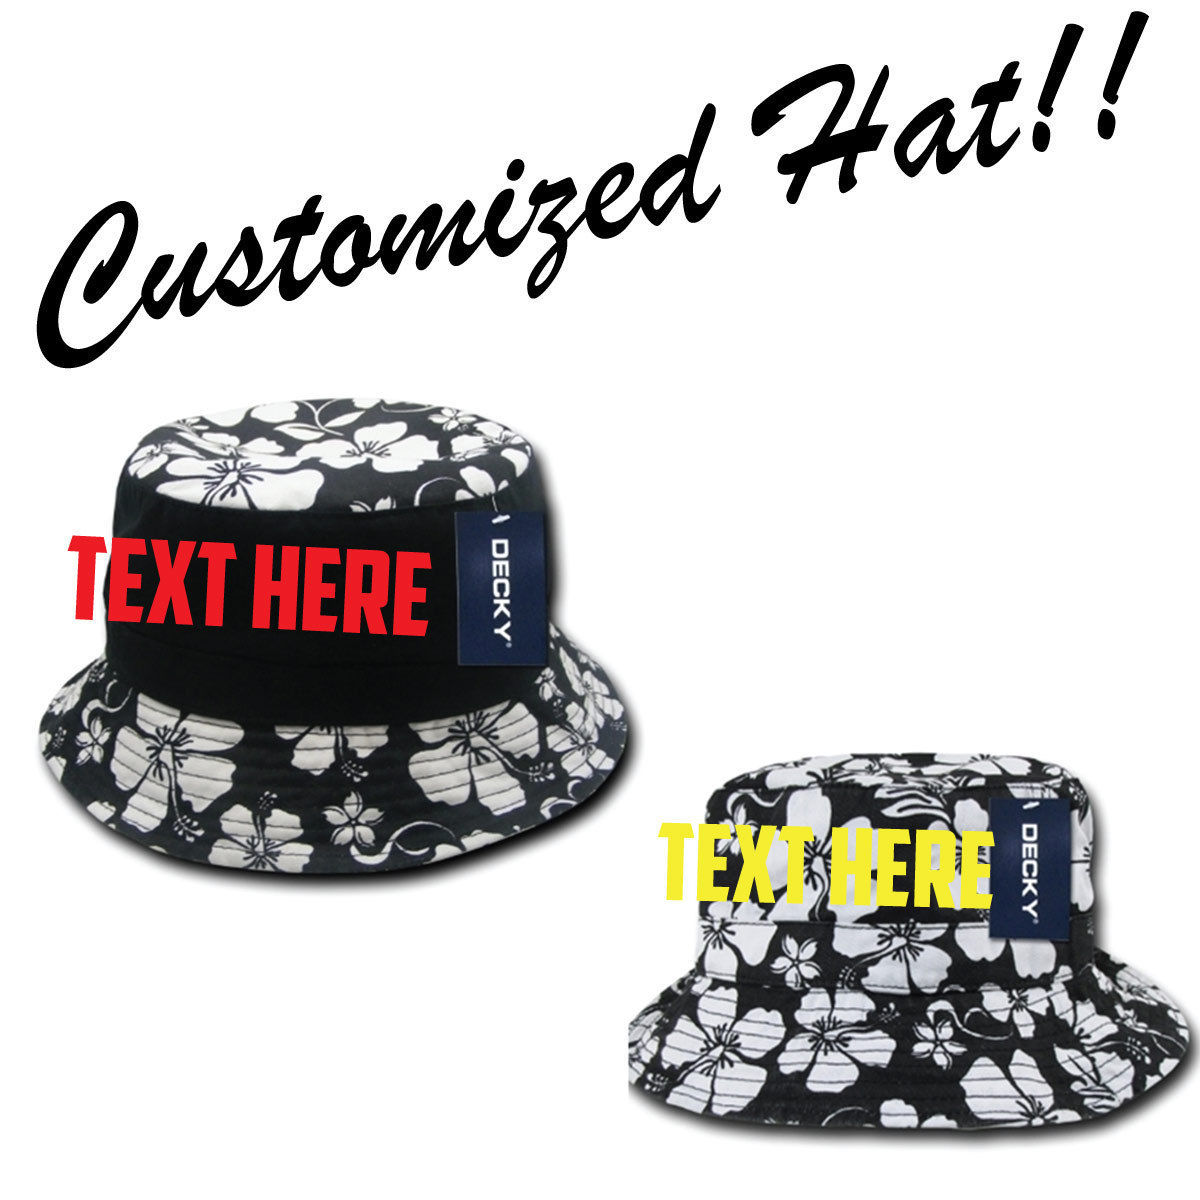 CUSTOM EMBROIDERY Personalized Customized Decky Floral Polo Bucket Hat 455 457